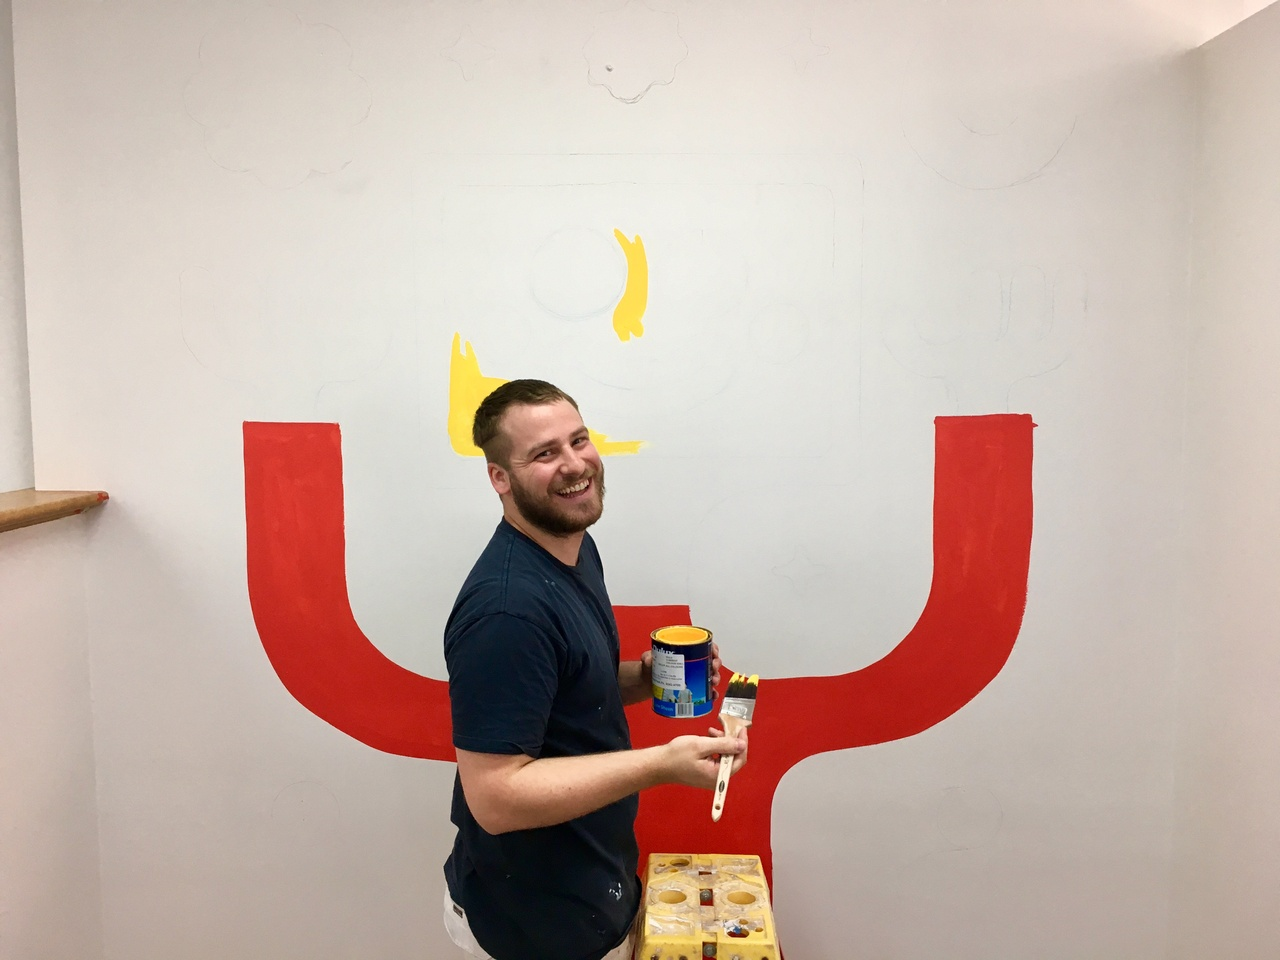 Tim Meakins - A happy mural maker.